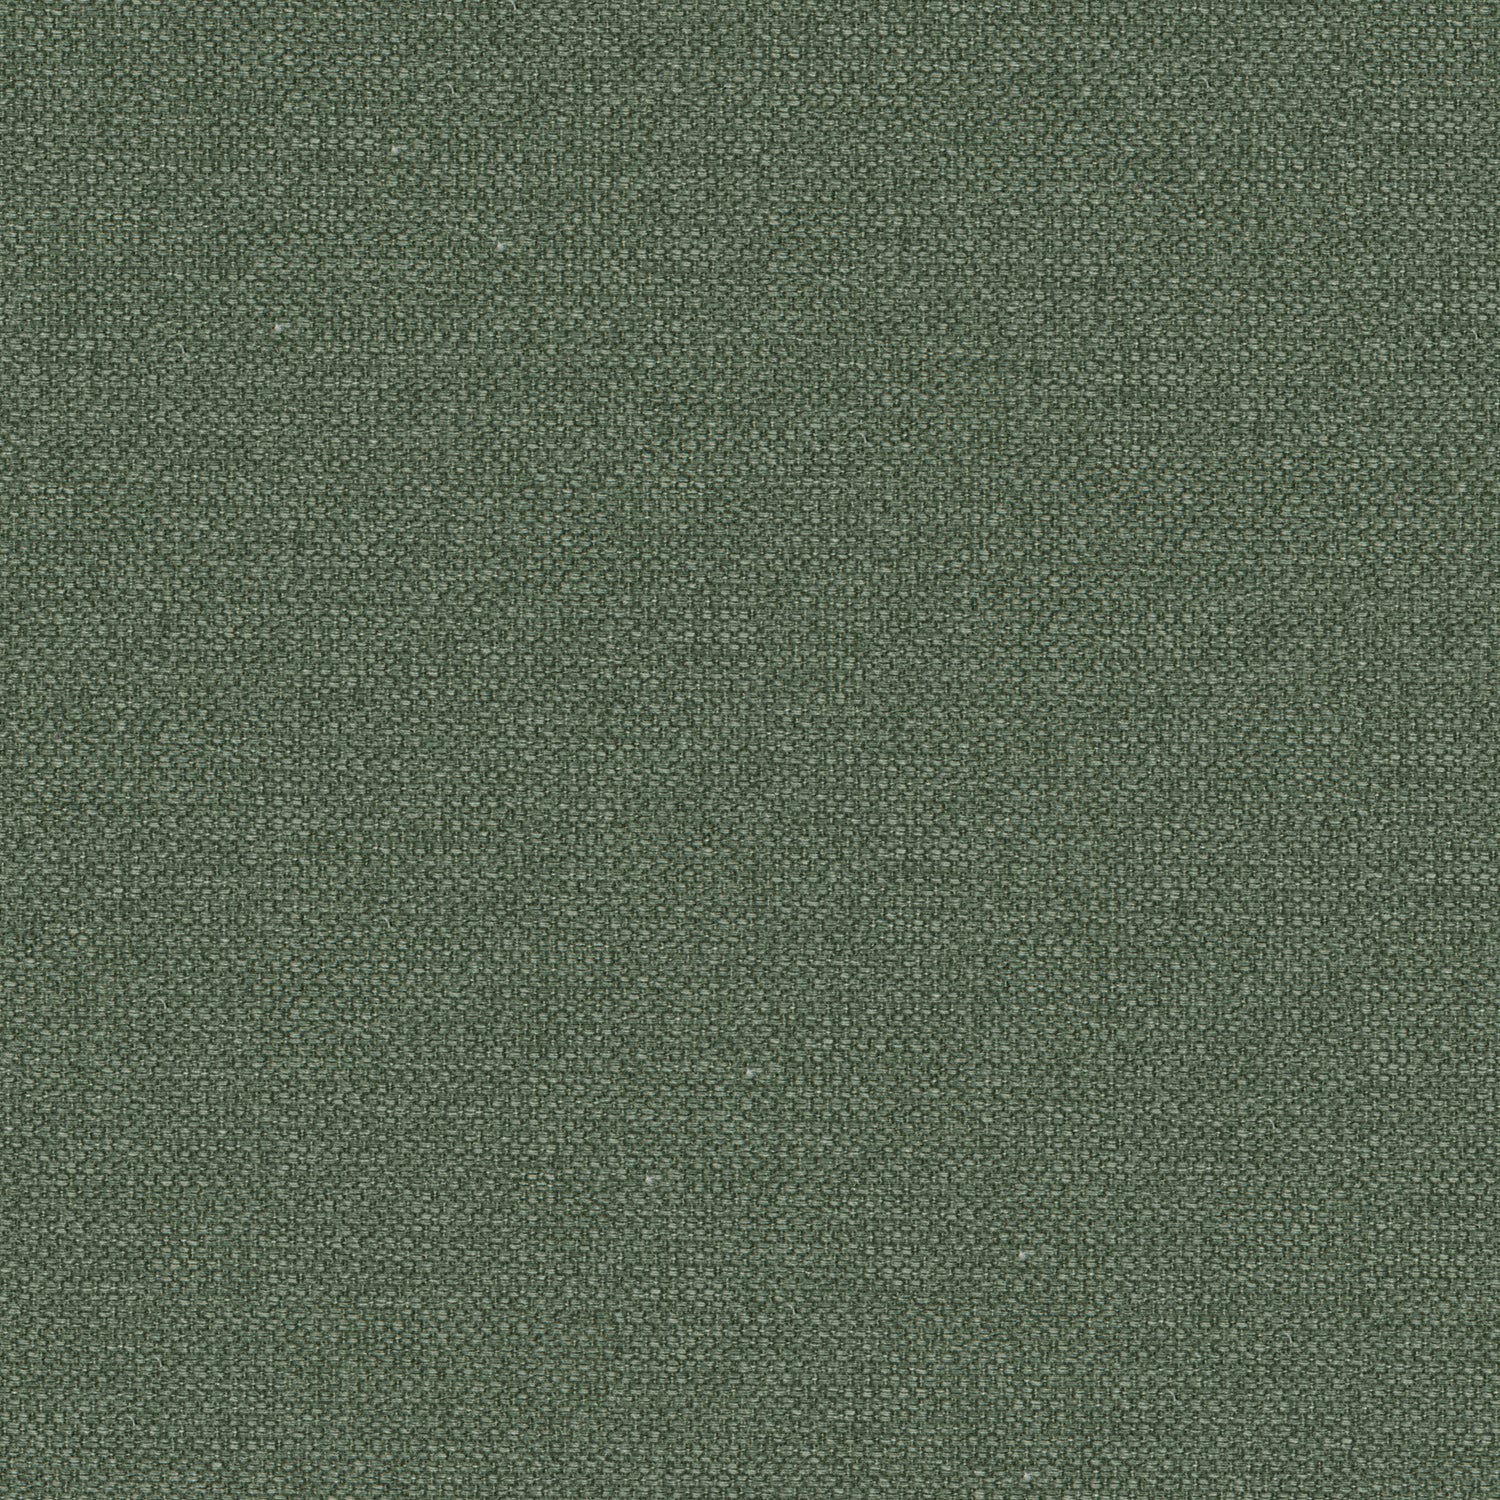 Sage green cotton fabric suitable for curtains and upholstery